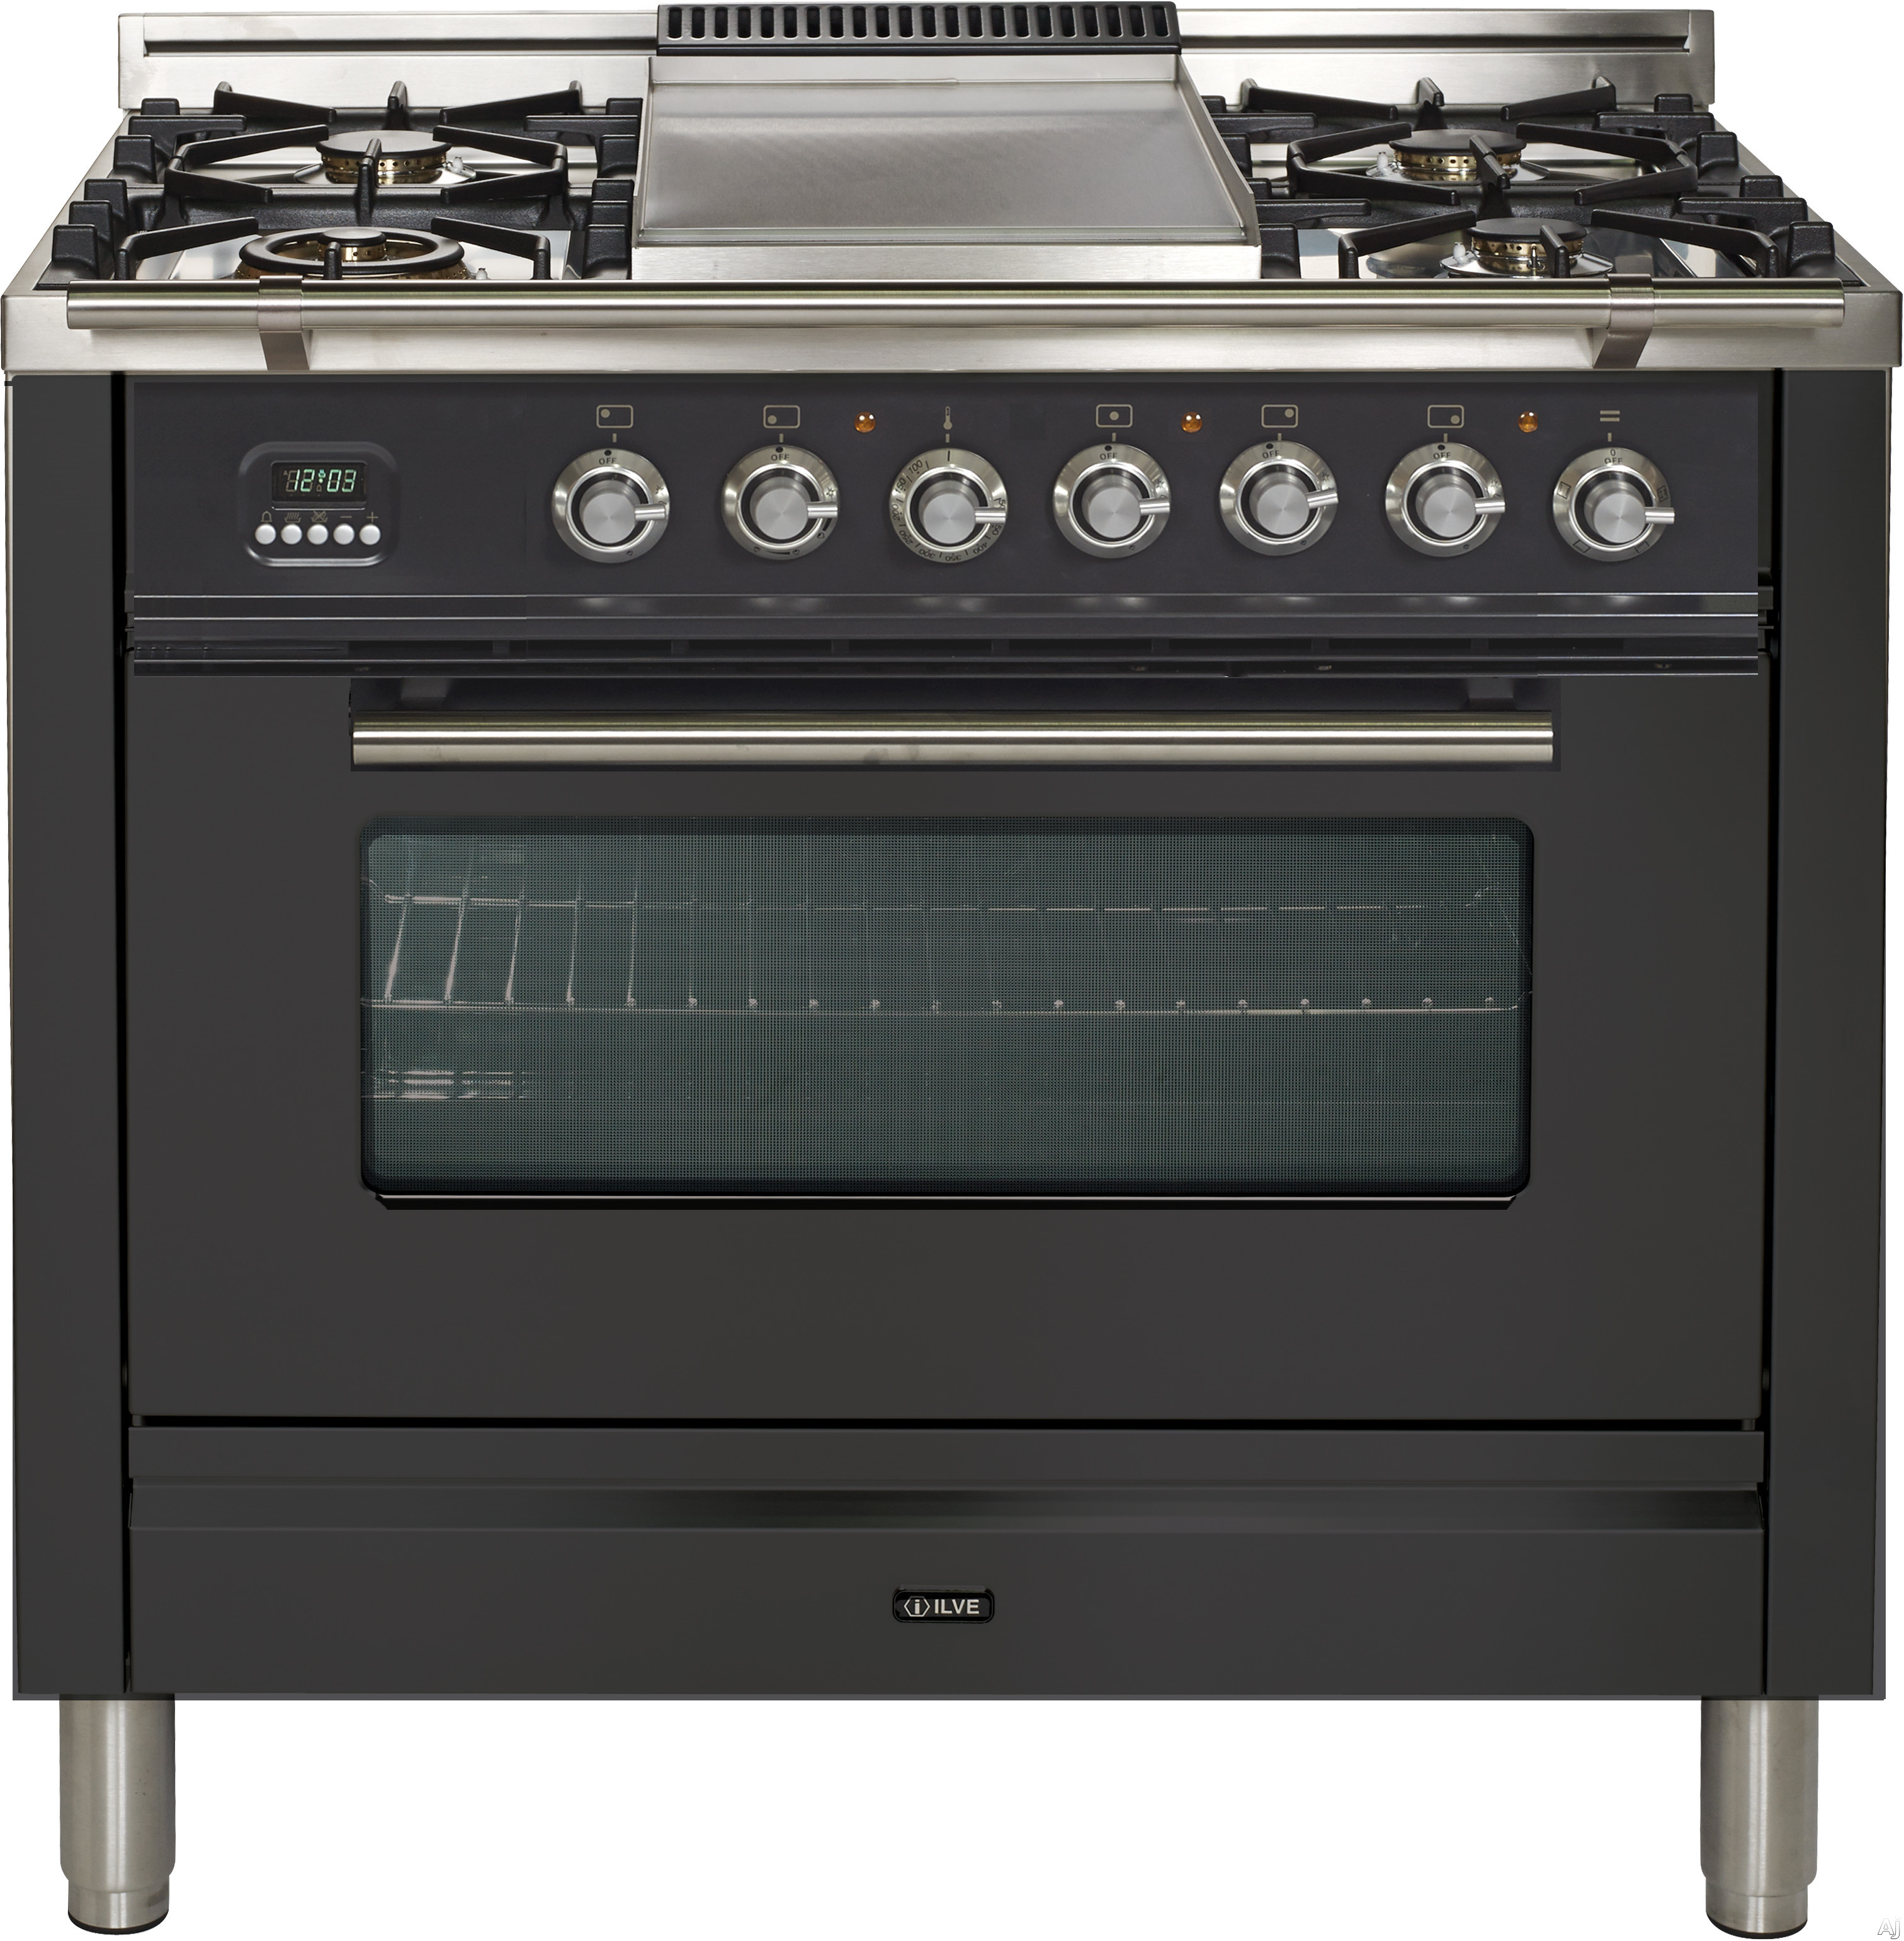 Ilve Proline Series UPDW90FDMPI 36 Inch Dual Fuel Double Range With Digital Clock and Timer, Warming Drawer, Cast Iron Grates, Convection, Rotisserie, Multi Function and Griddl: Stainless Steel UPDW90FDMPI